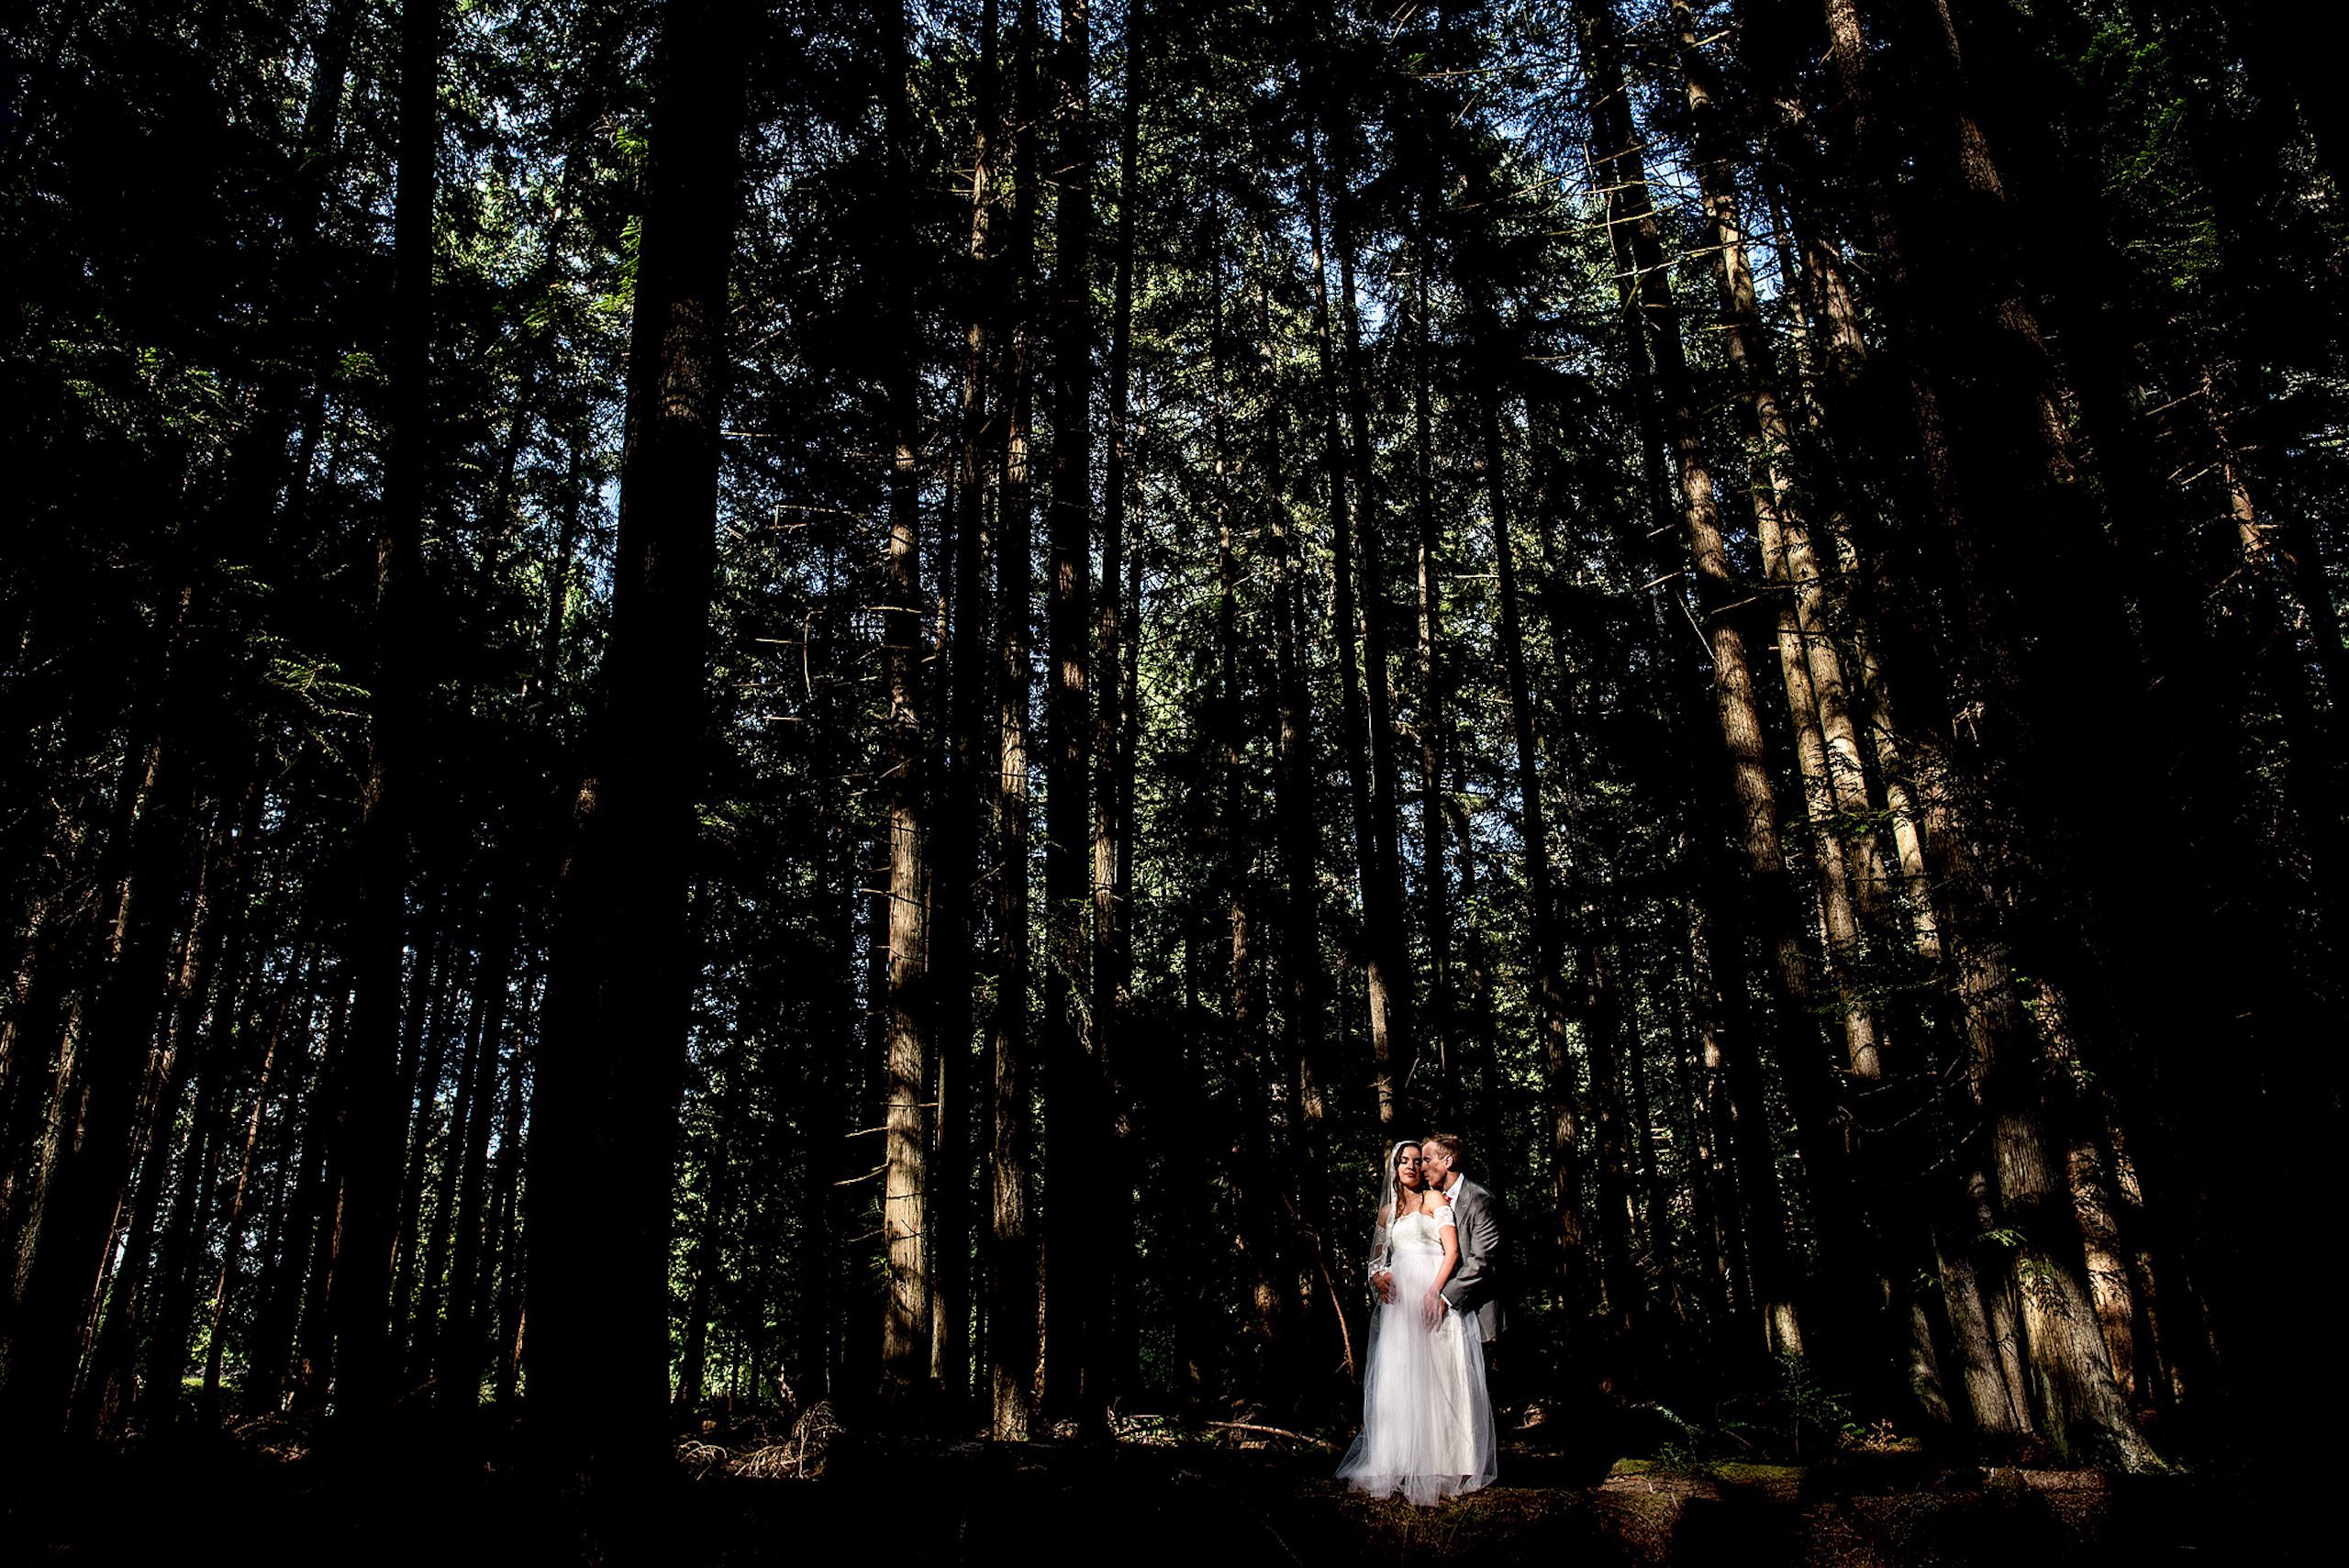 bride and groom embracing each other in the forest